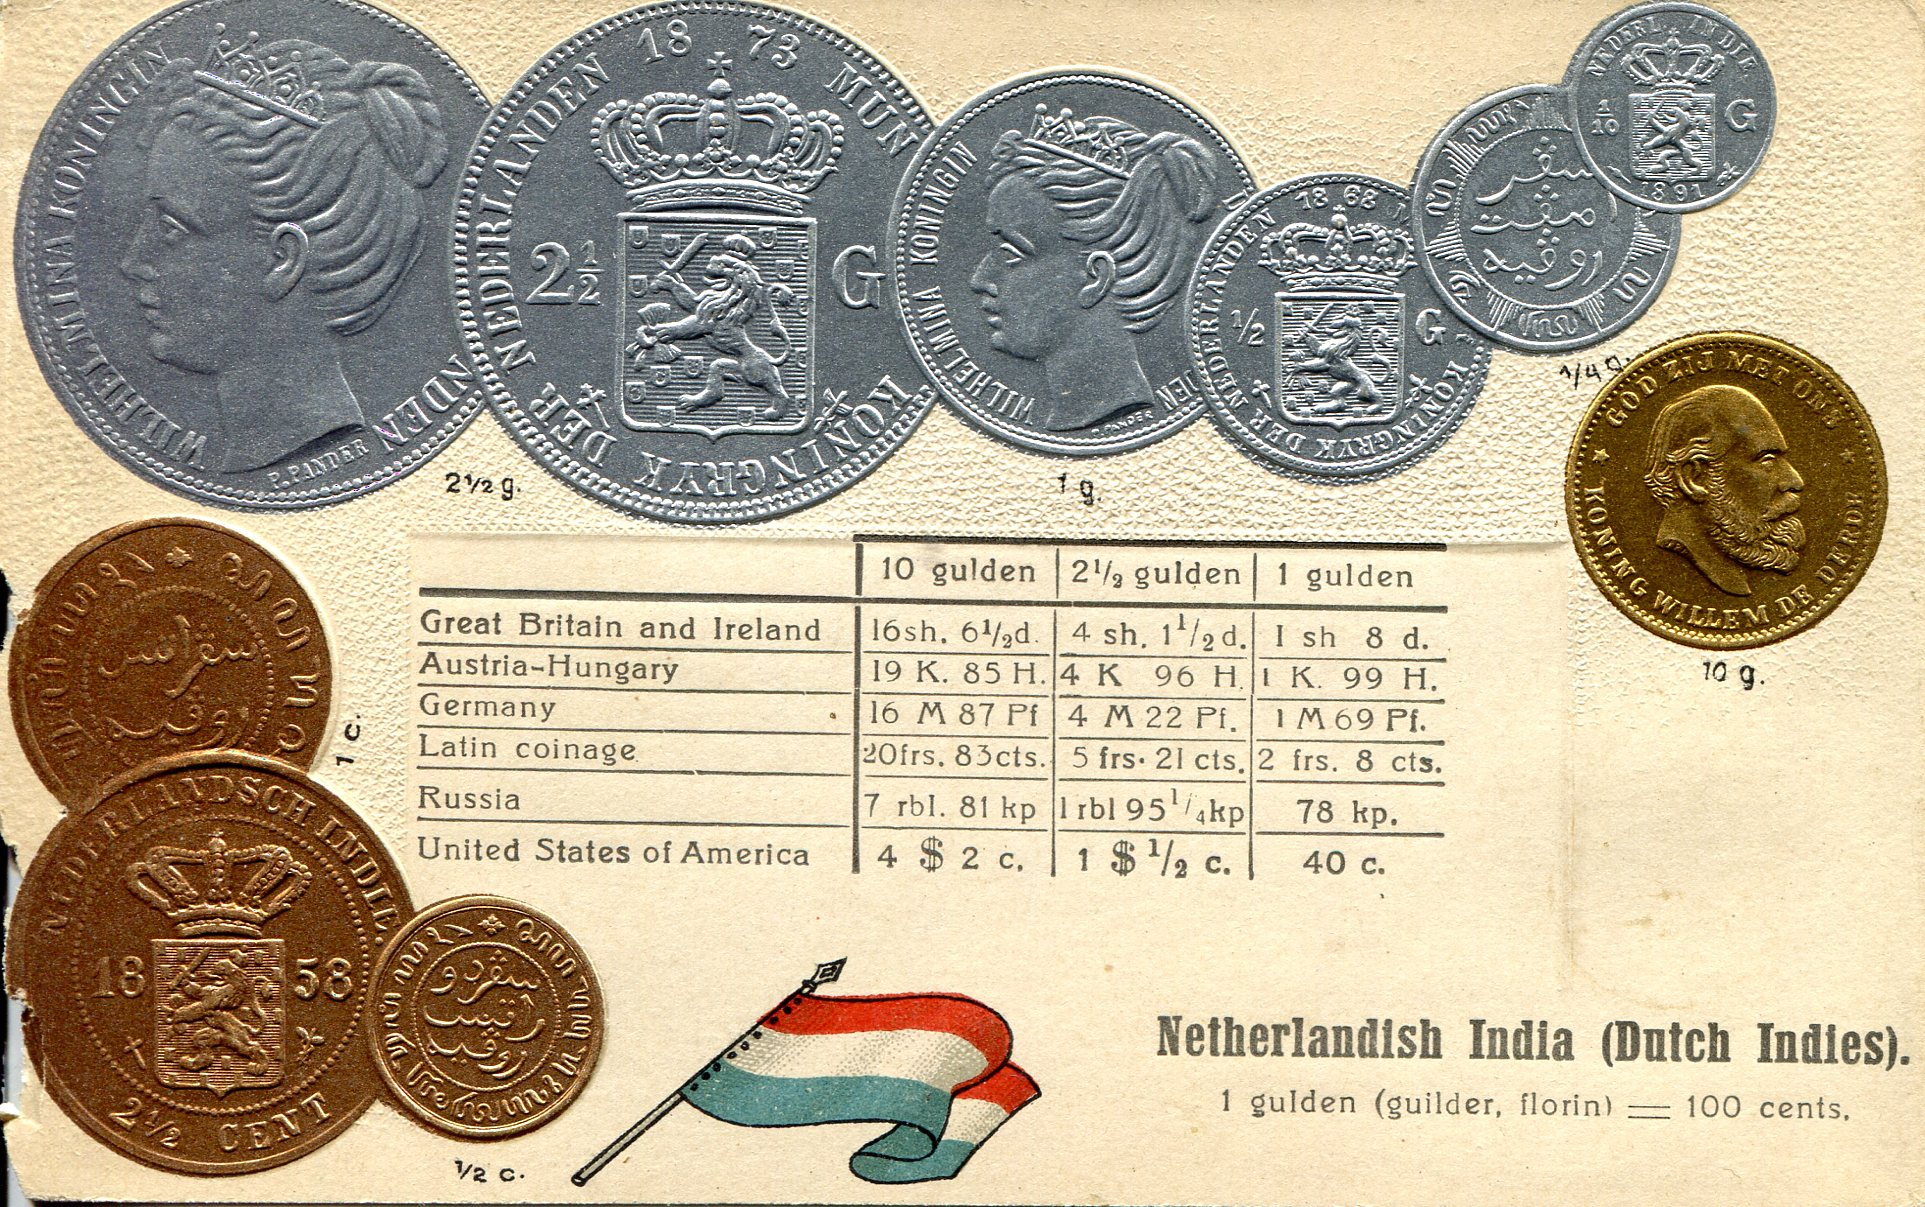 File:Numismatic postcard from the early 1900's - Netherlands